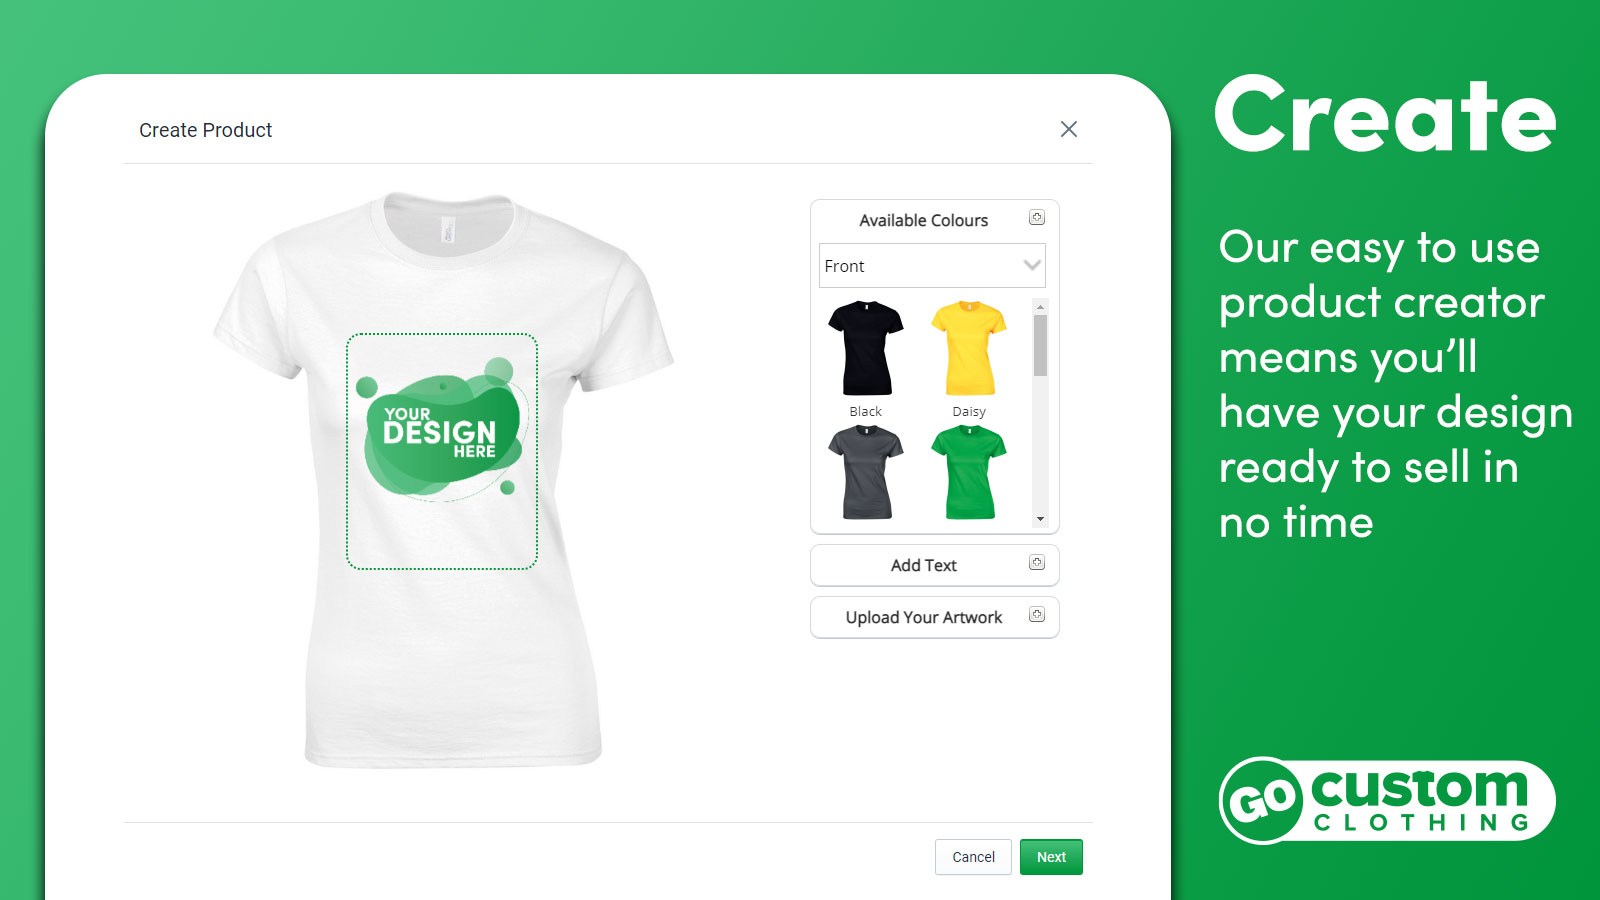 Customise the products with the easy to use GoCustom editor